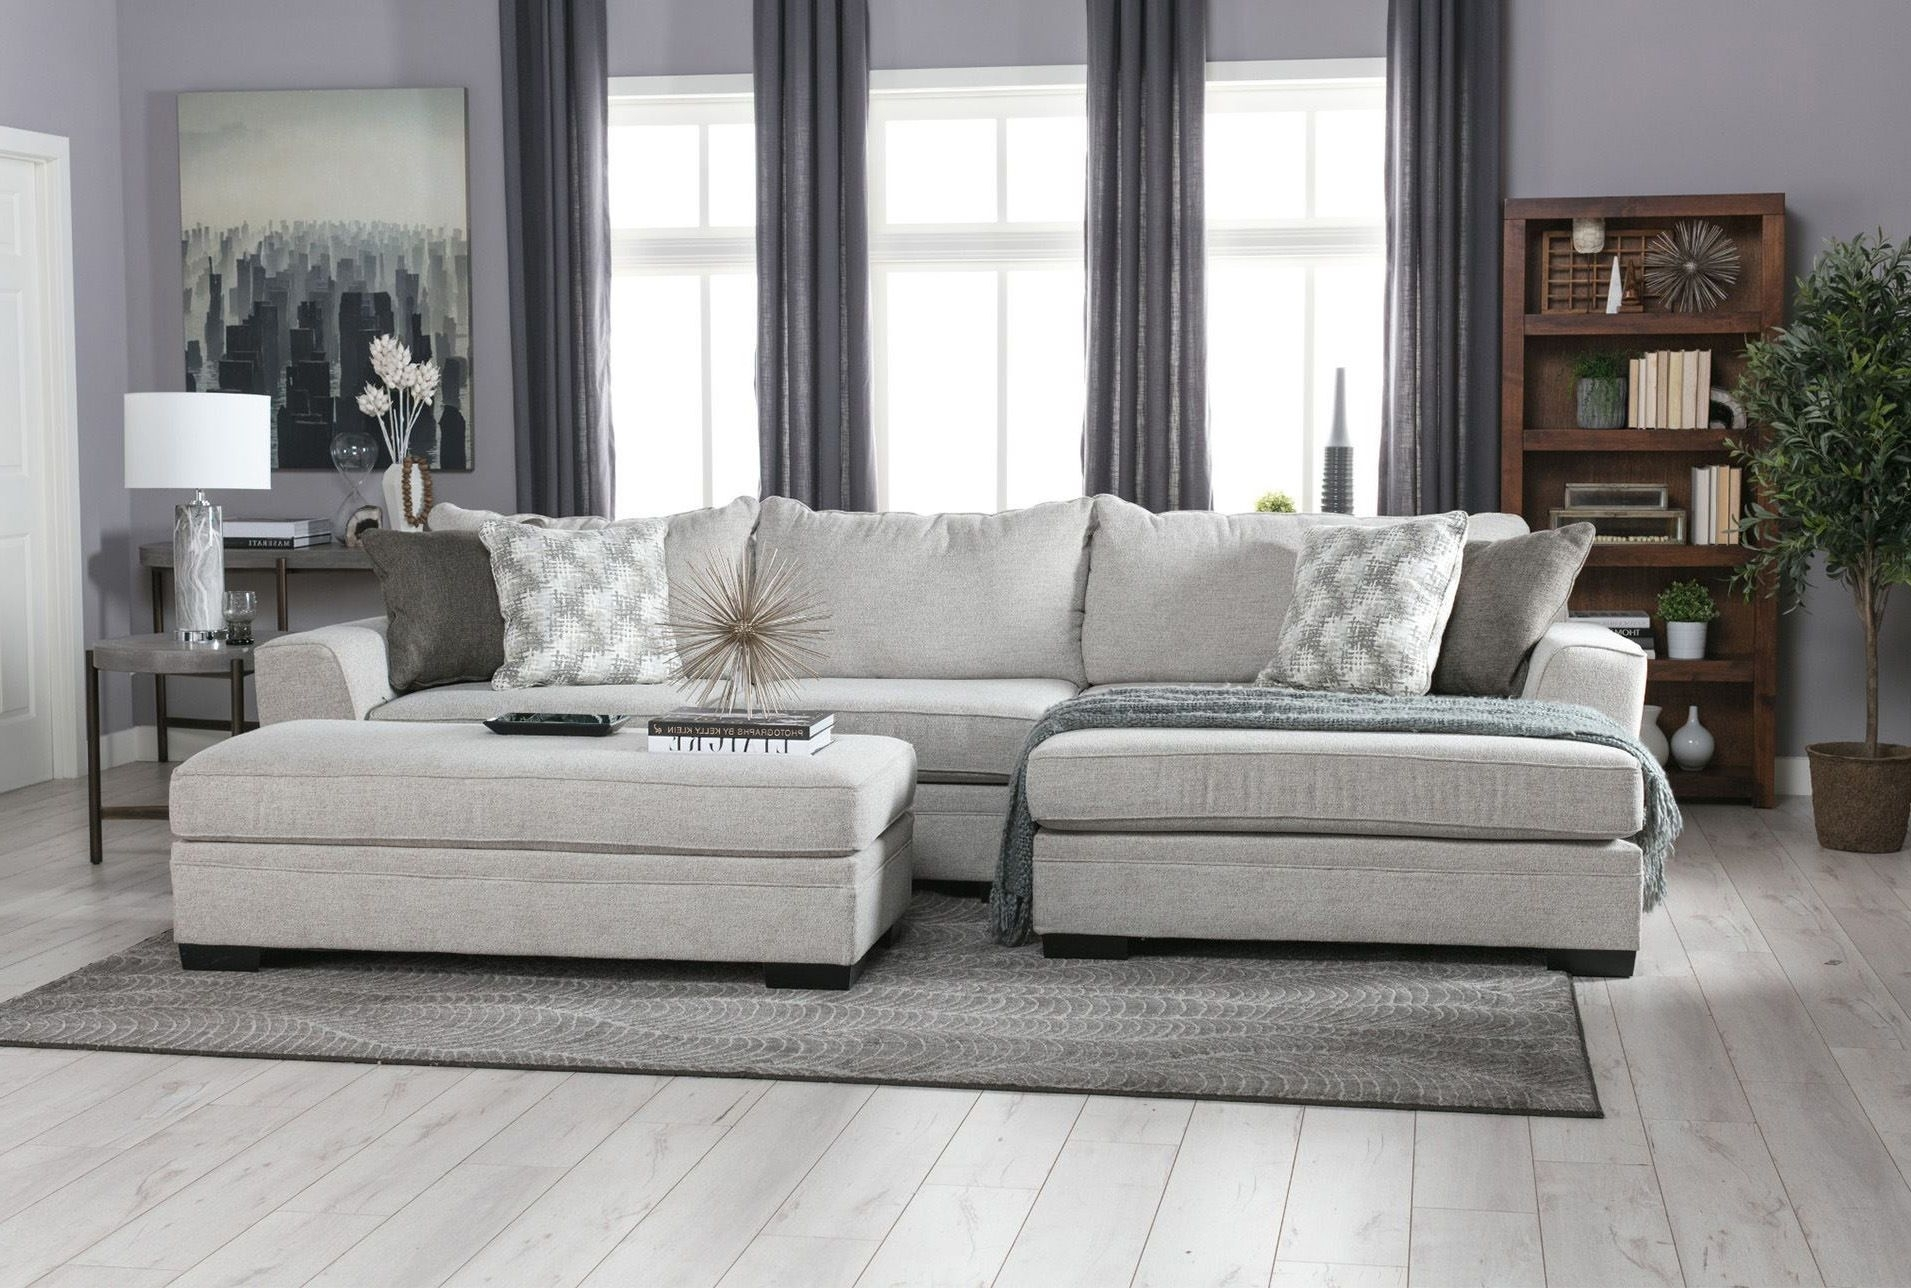 Aquarius Light Grey 2 Piece Sectional Wlaf Chaise Minimalist With Avery 2 Piece Sectionals With Raf Armless Chaise (View 24 of 25)